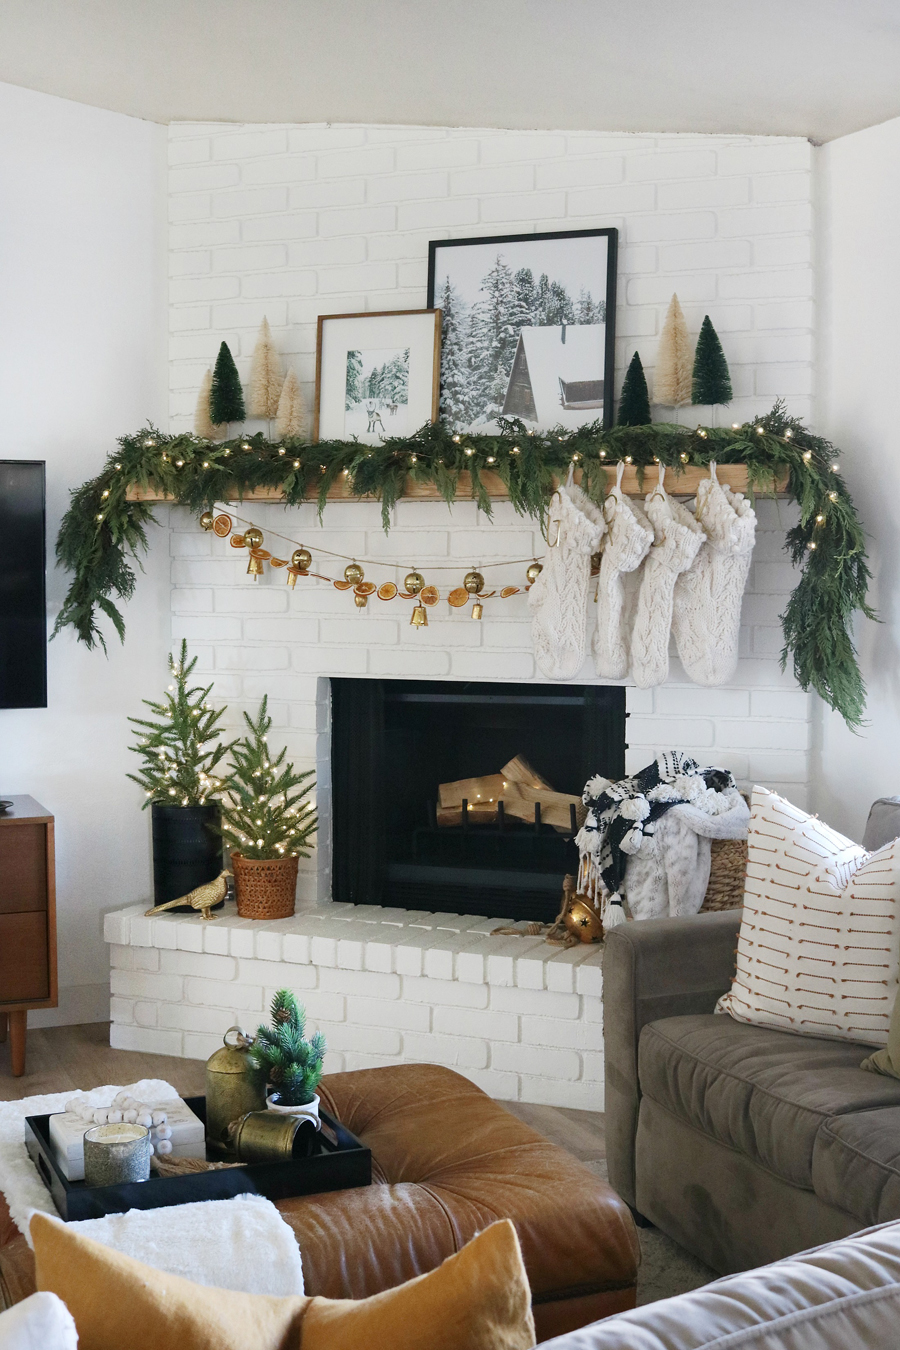 Create a Cozy and Modern Holiday Look with Live Green Garlands, Dried Orange Slices, Neutral Decor, and Touches of Metallic Golds.